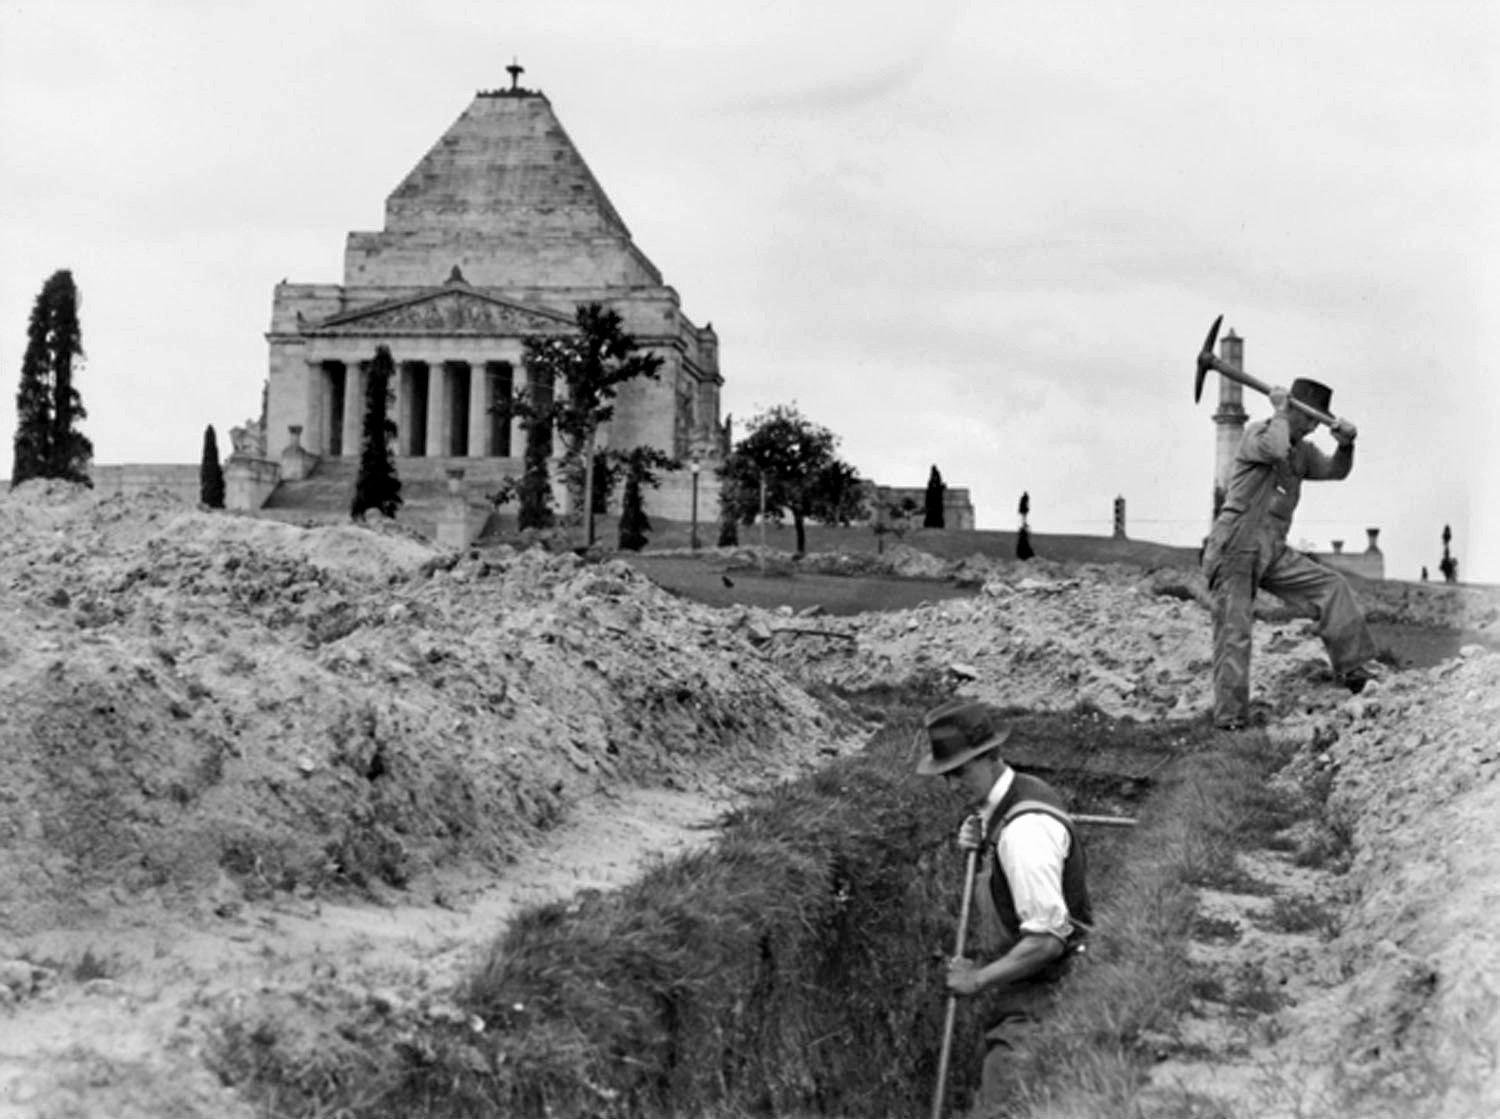 PREPARATIONS: AsSlit trench being built near the Melbourne Shrine of Remembrance.